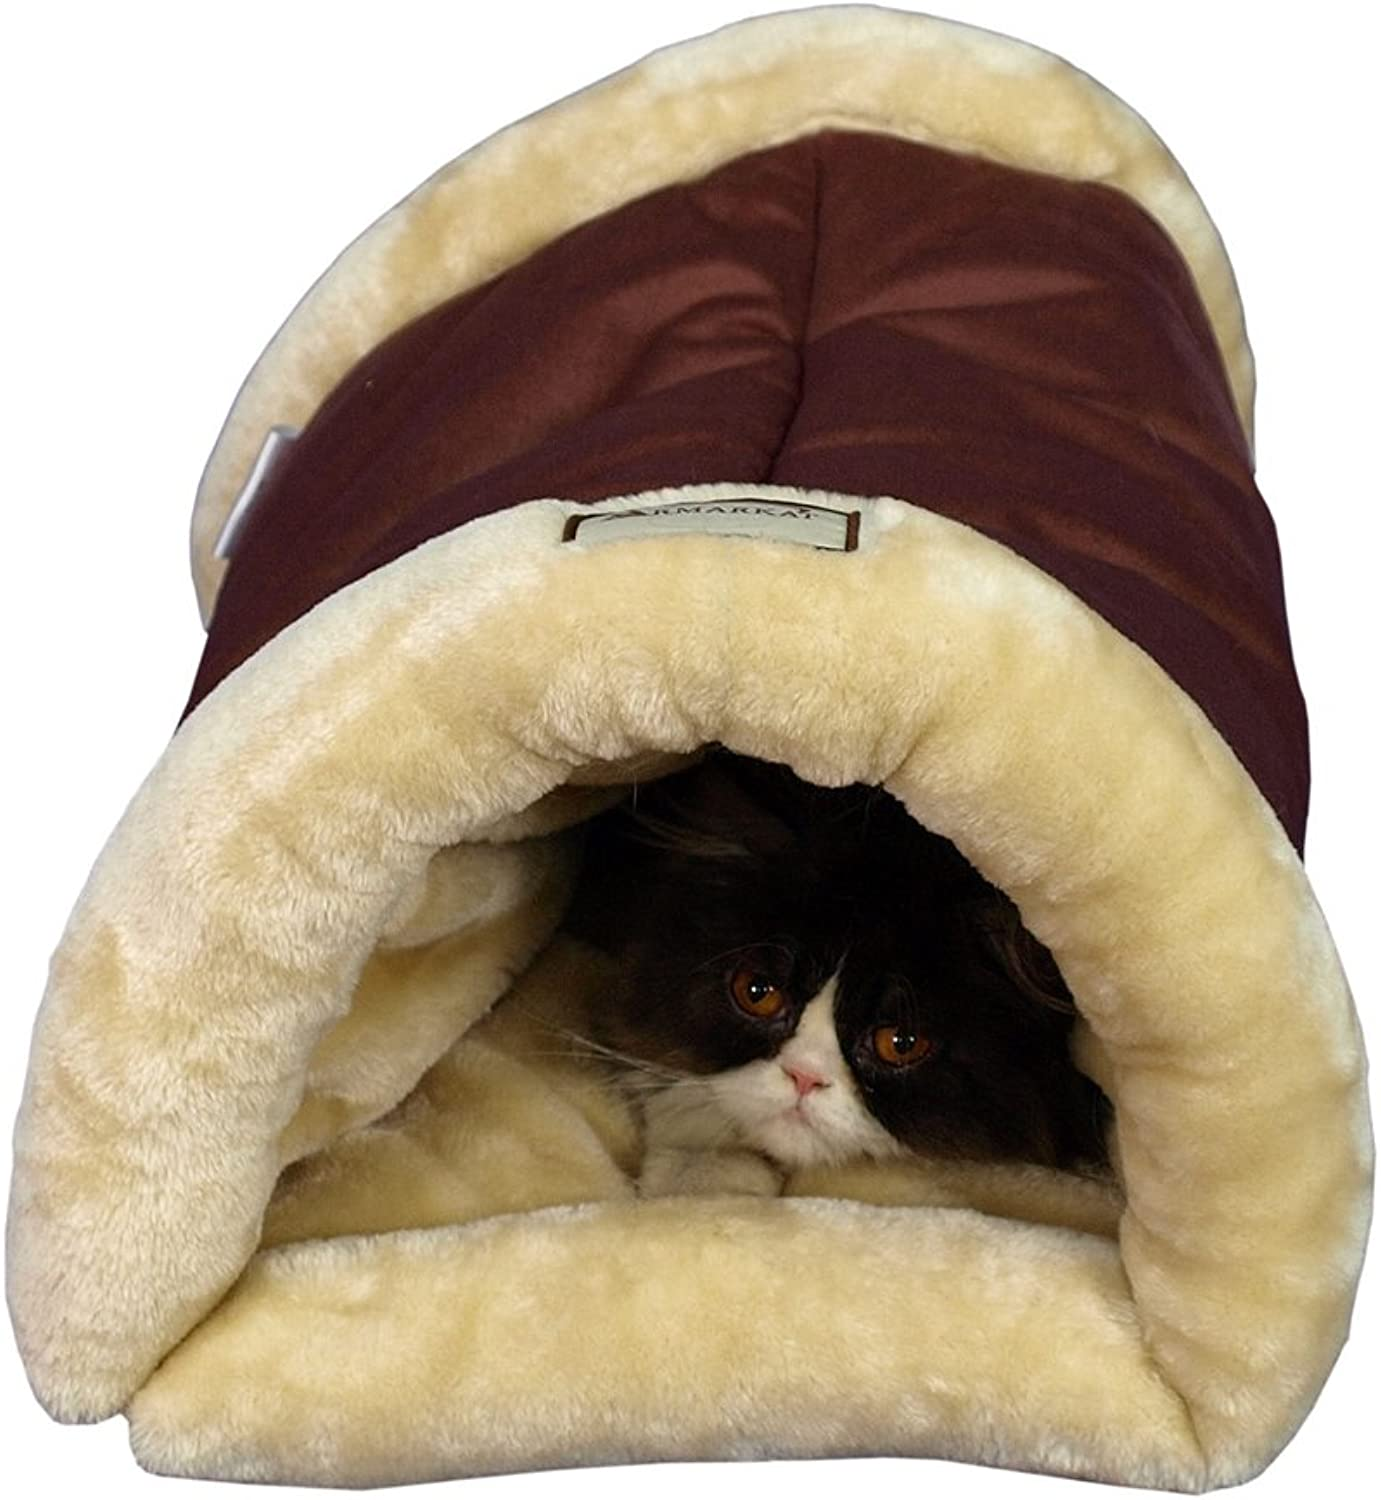 Armarkat Multiple use Cat Bed Pad, 22Inch by 14Inch by 10Inch or 38Inch by 22Inch by Armarkat